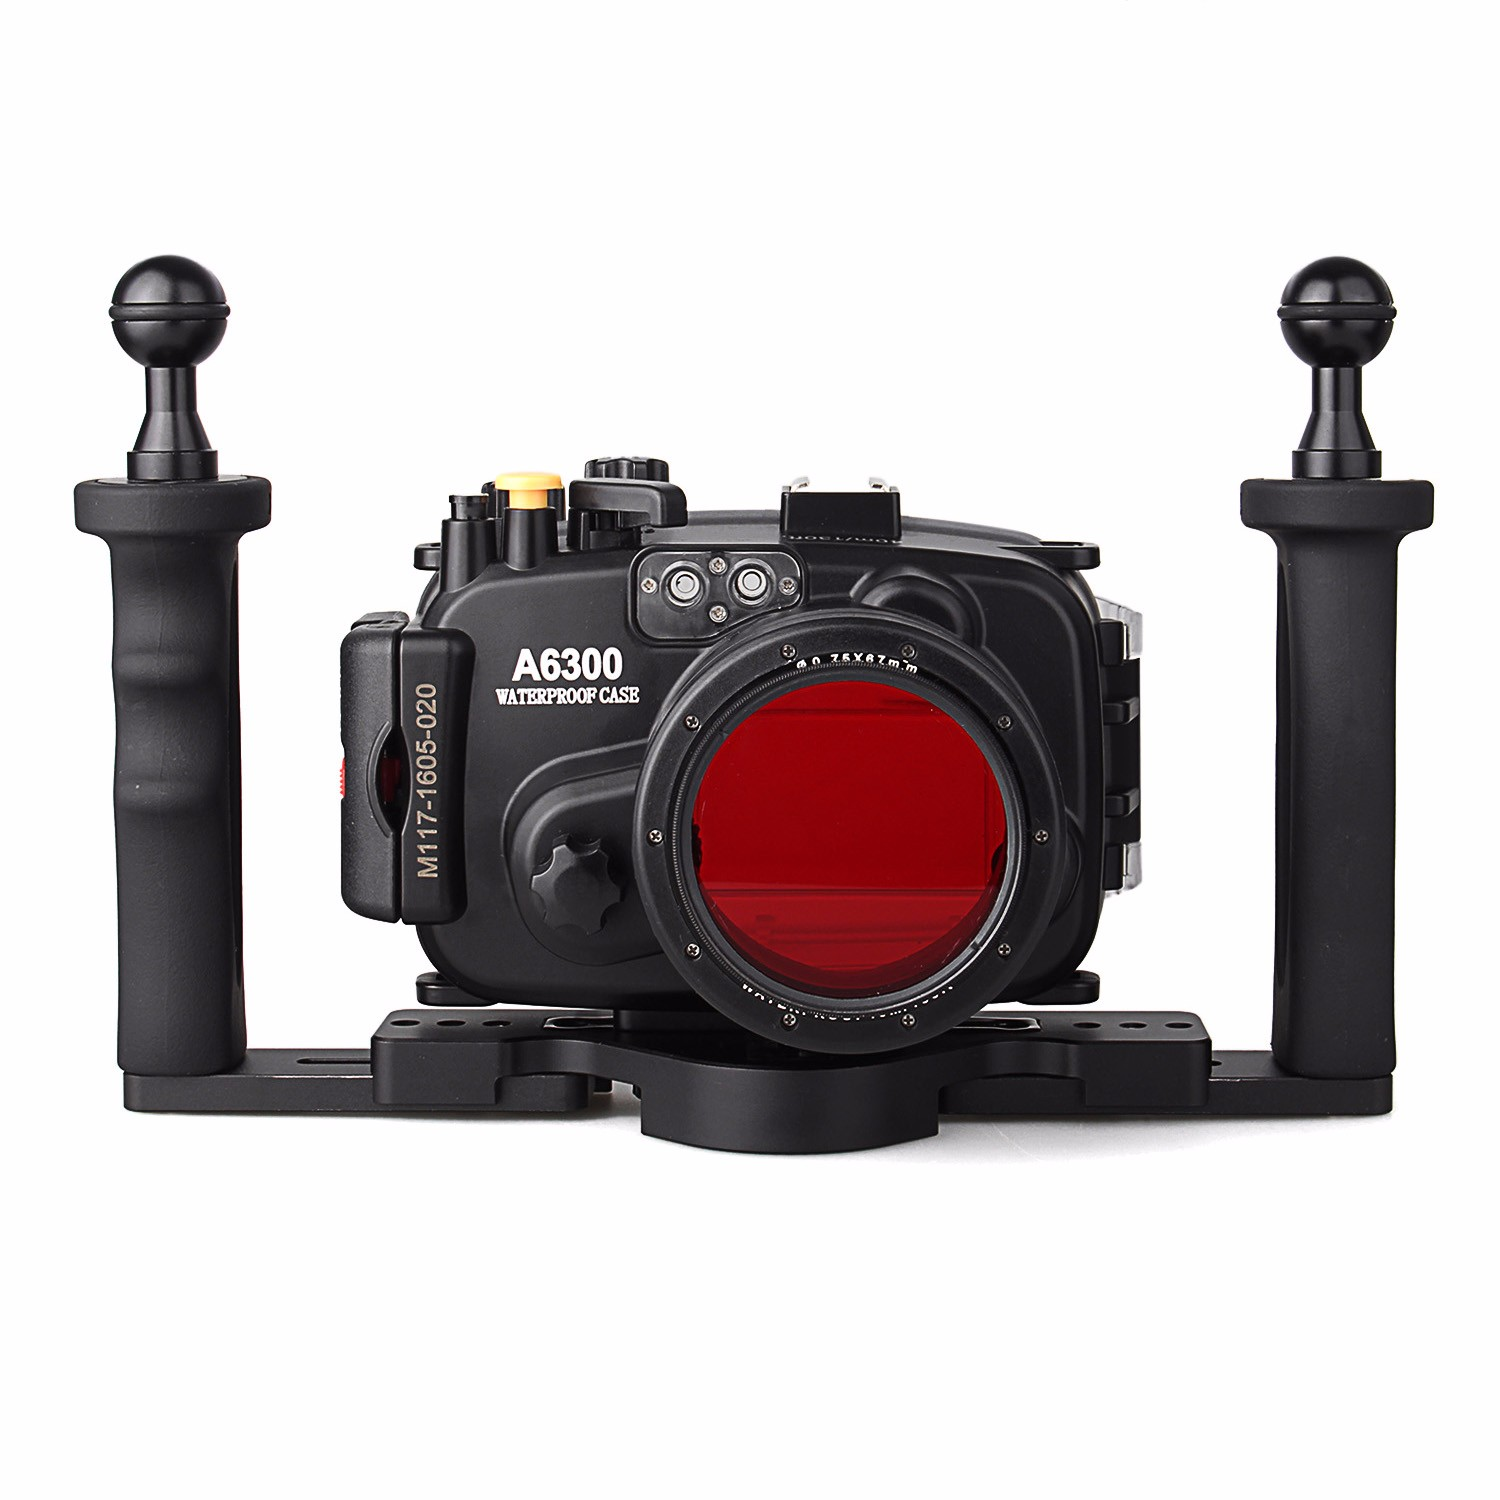 Meikon 40m/130ft Waterproof Underwater Camera Housing Case for A6300 16 50mm Lens + Two Hands Aluminium Tray + 67mm Red Filter